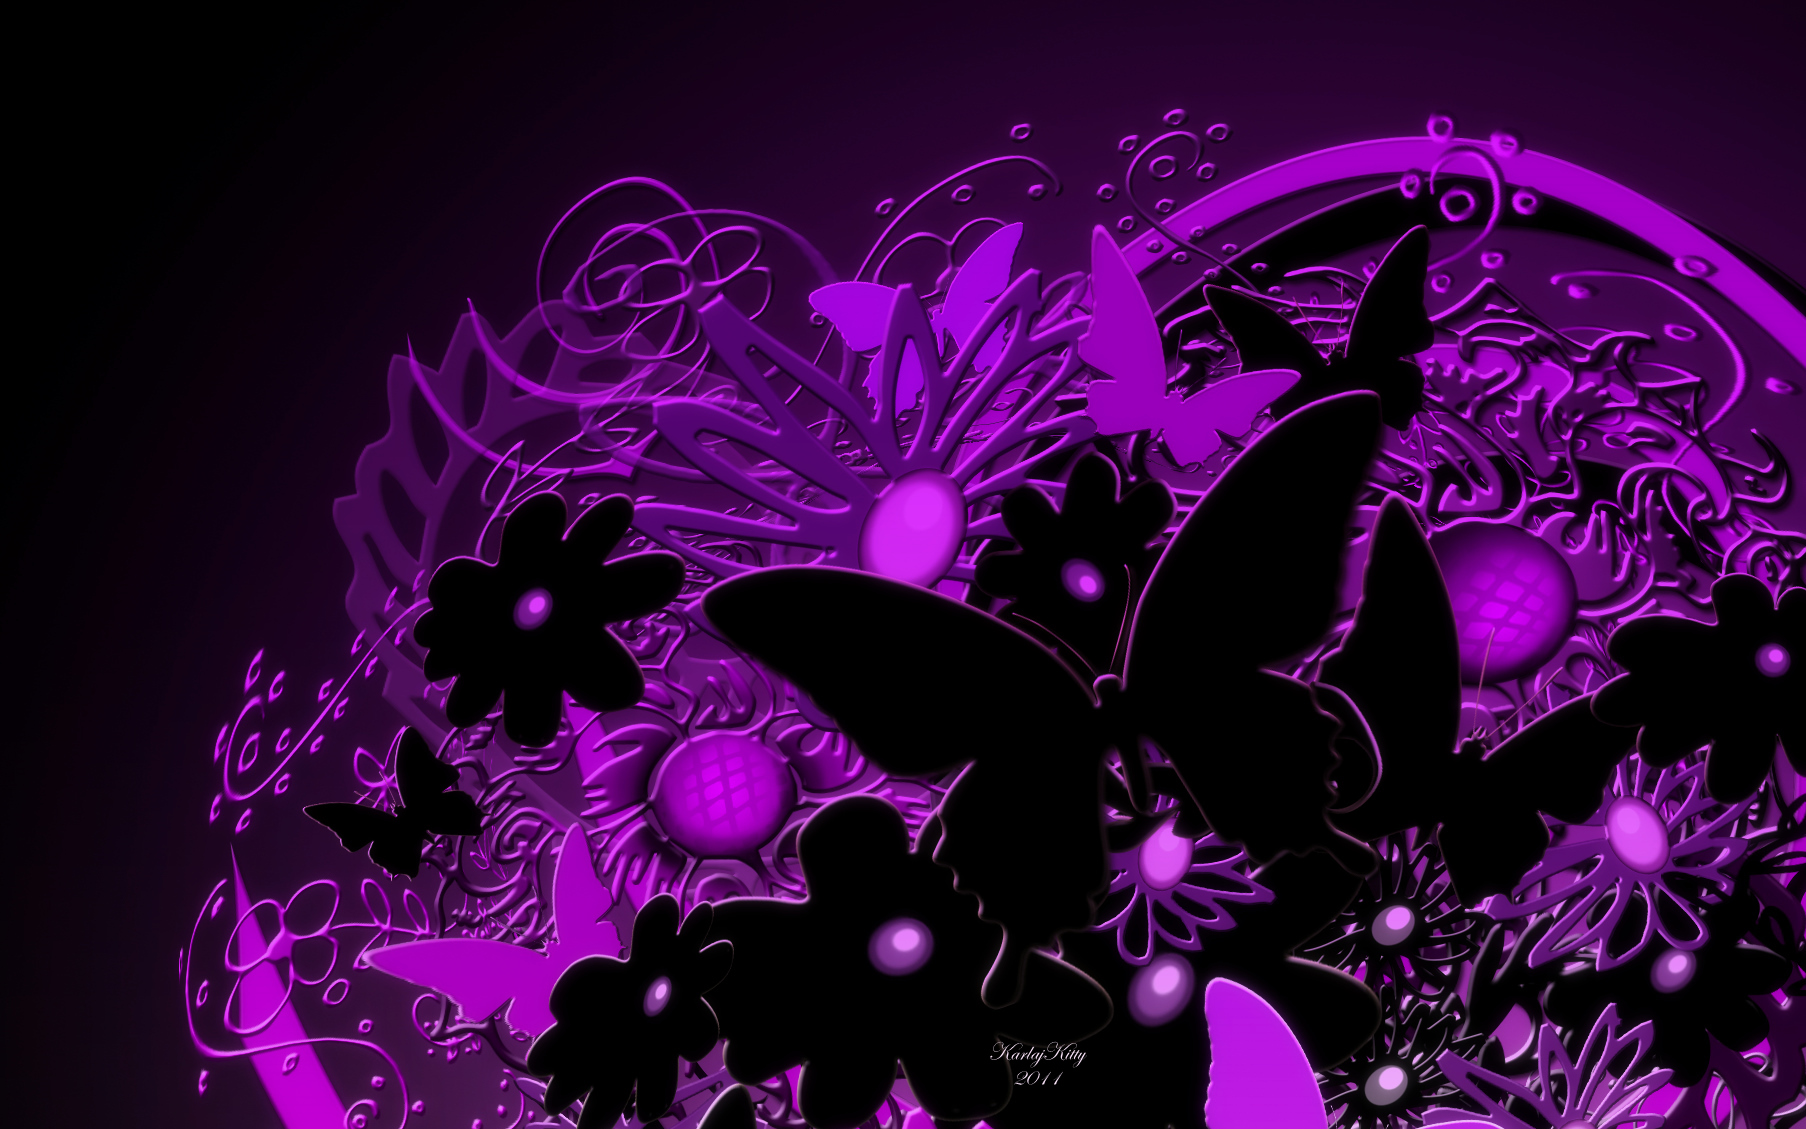 Purple Butterfly Wallpaper High Quality Resolution at 1806x1129